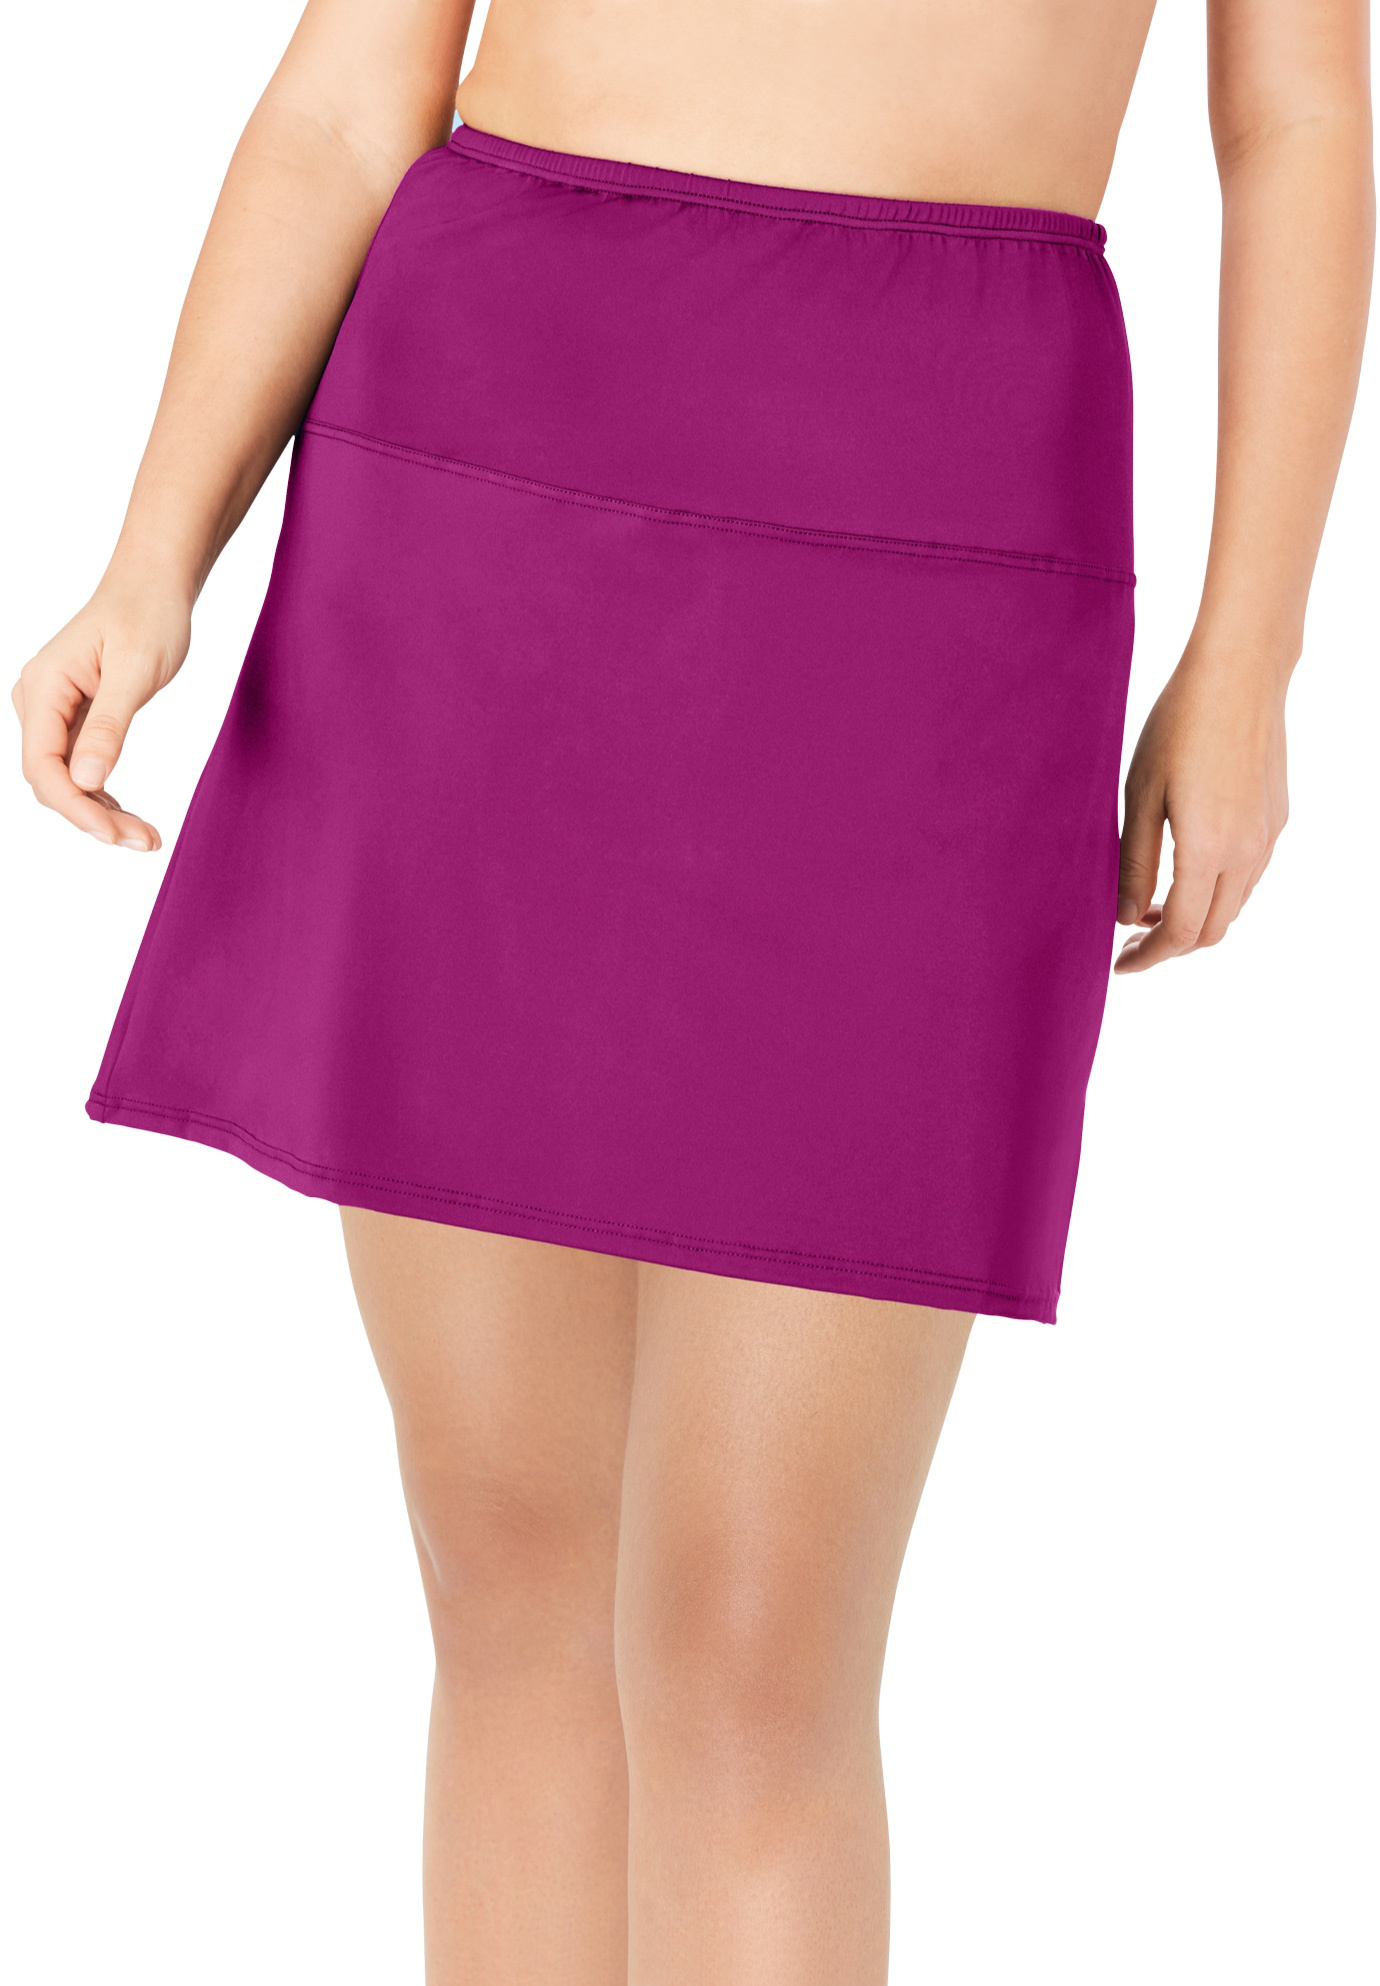 Plus Size Women's High-Waisted Swim Skirt with Built-In Brief by Swim 365 in Fuchsia